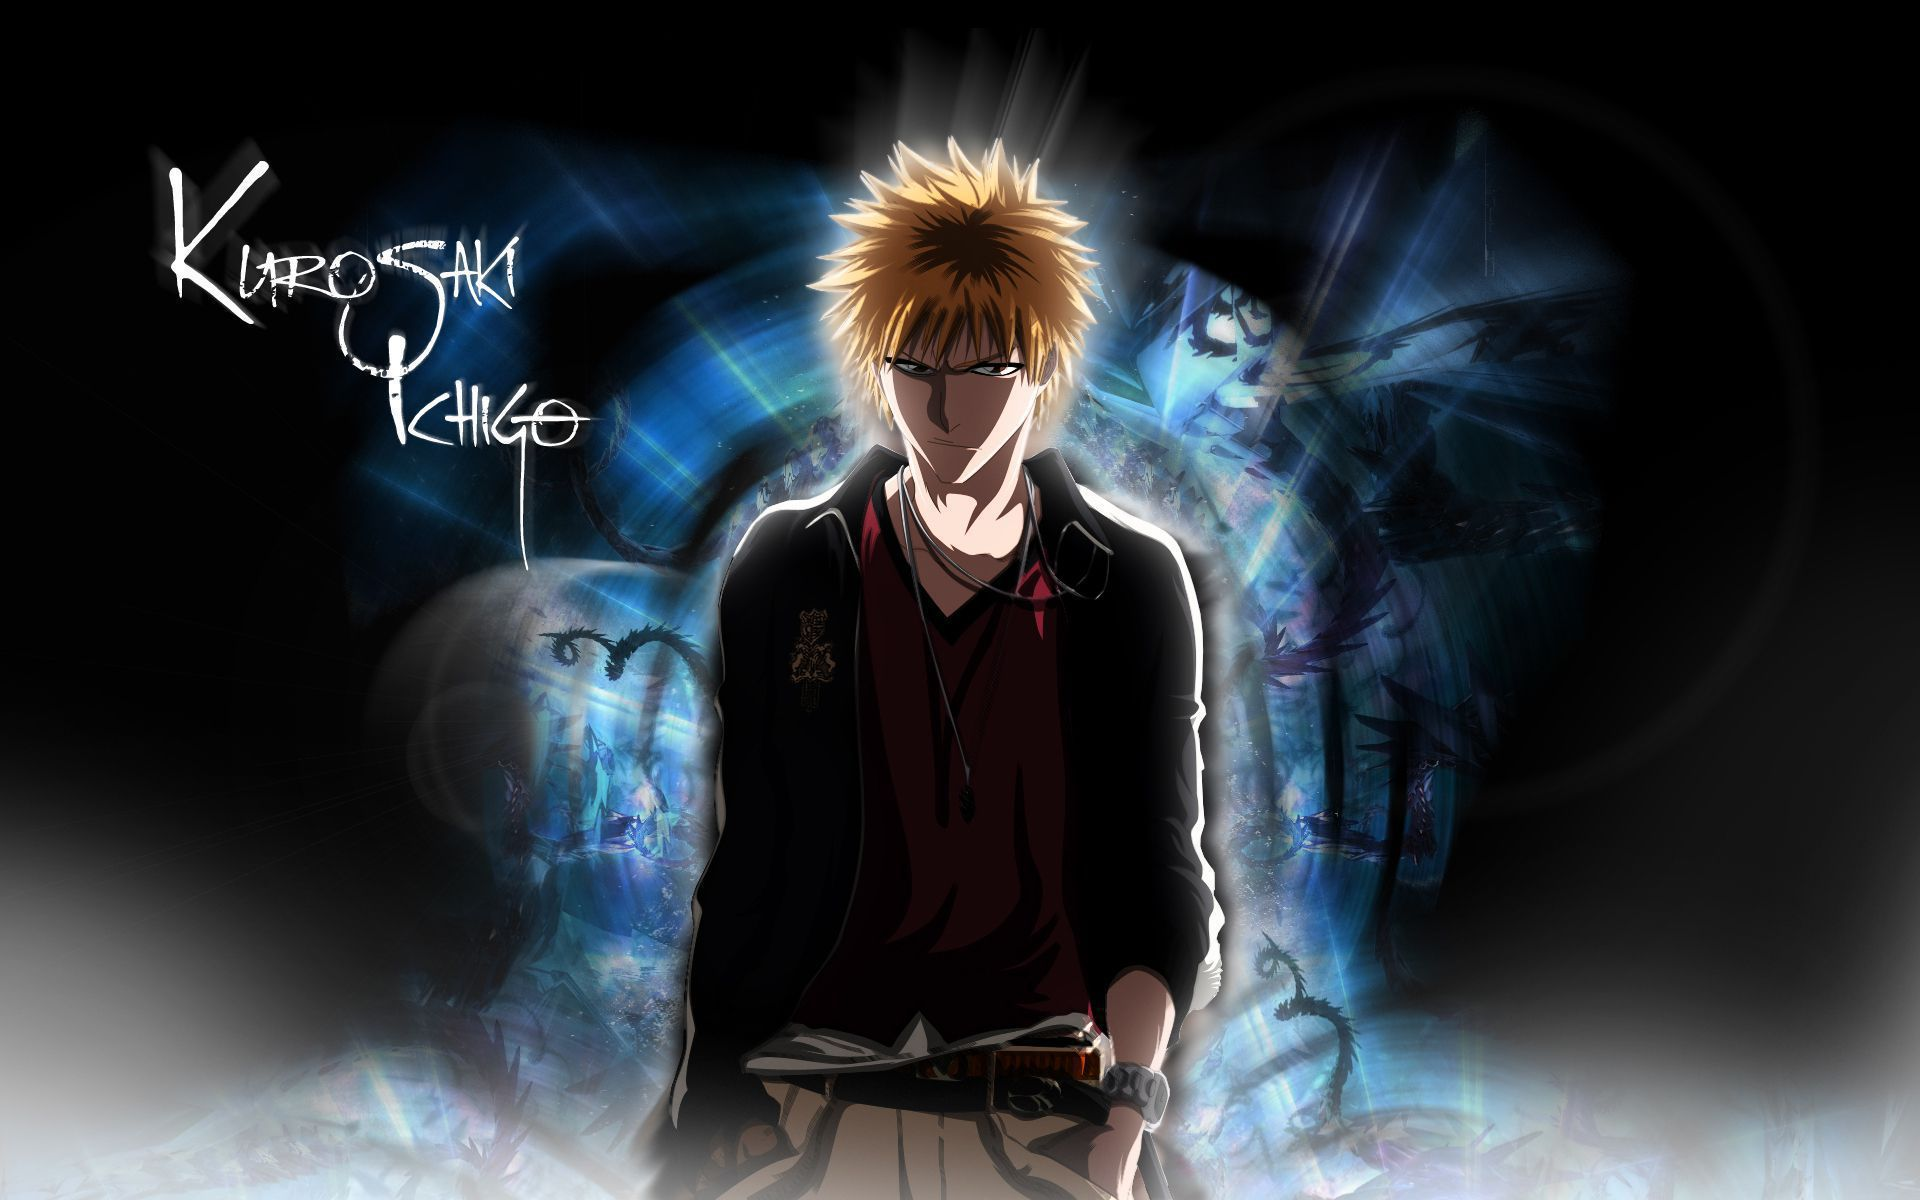 Bleach wallpapers backgrounds - Imagens em hd de animes ...